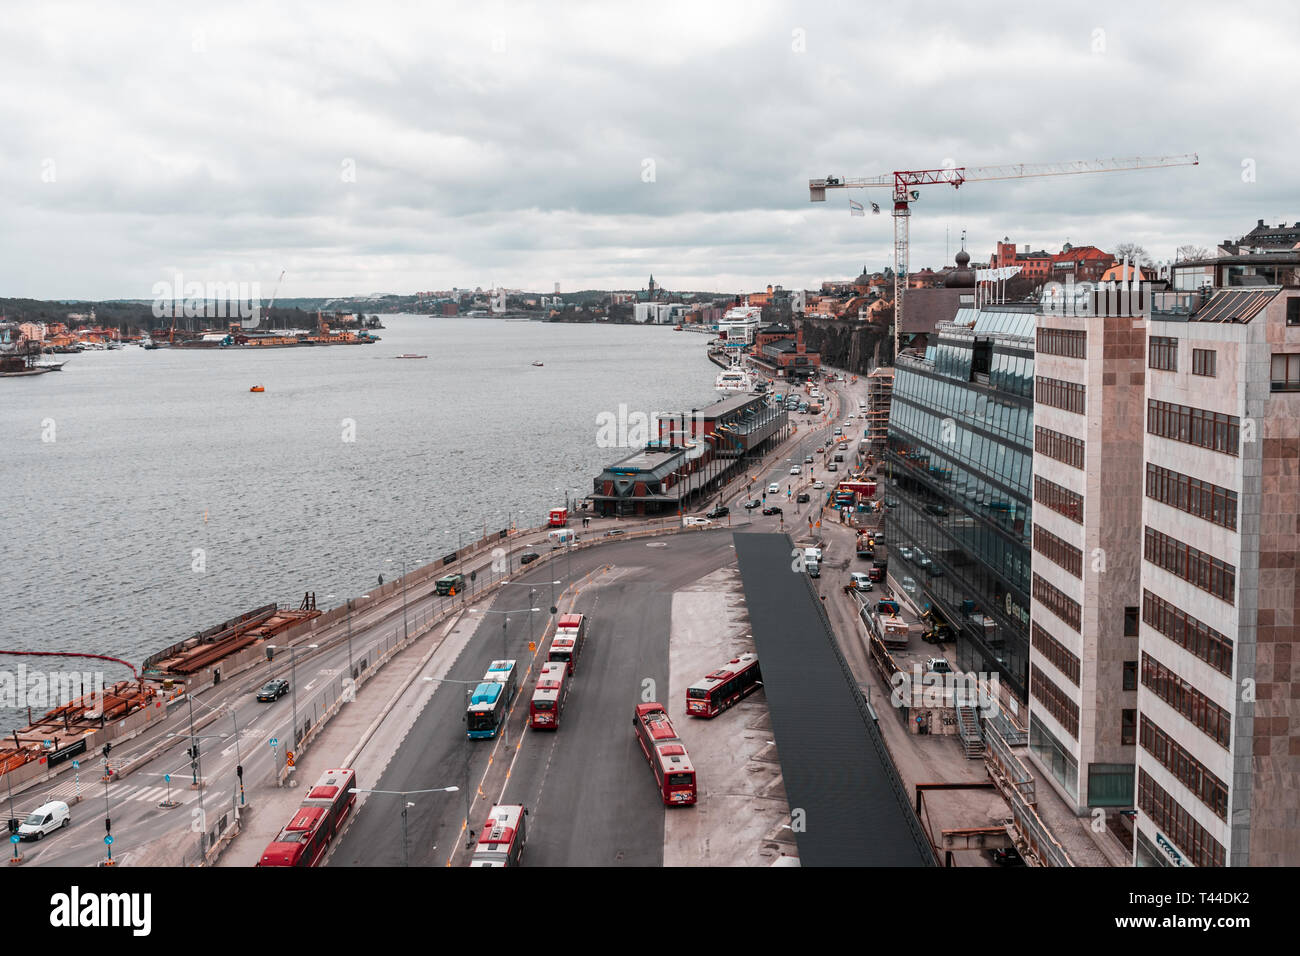 Editorial 03.26.2019 Stockholm Sweden. View of Statsgarden and Viking Lines MS Gabriella in the background - Stock Image